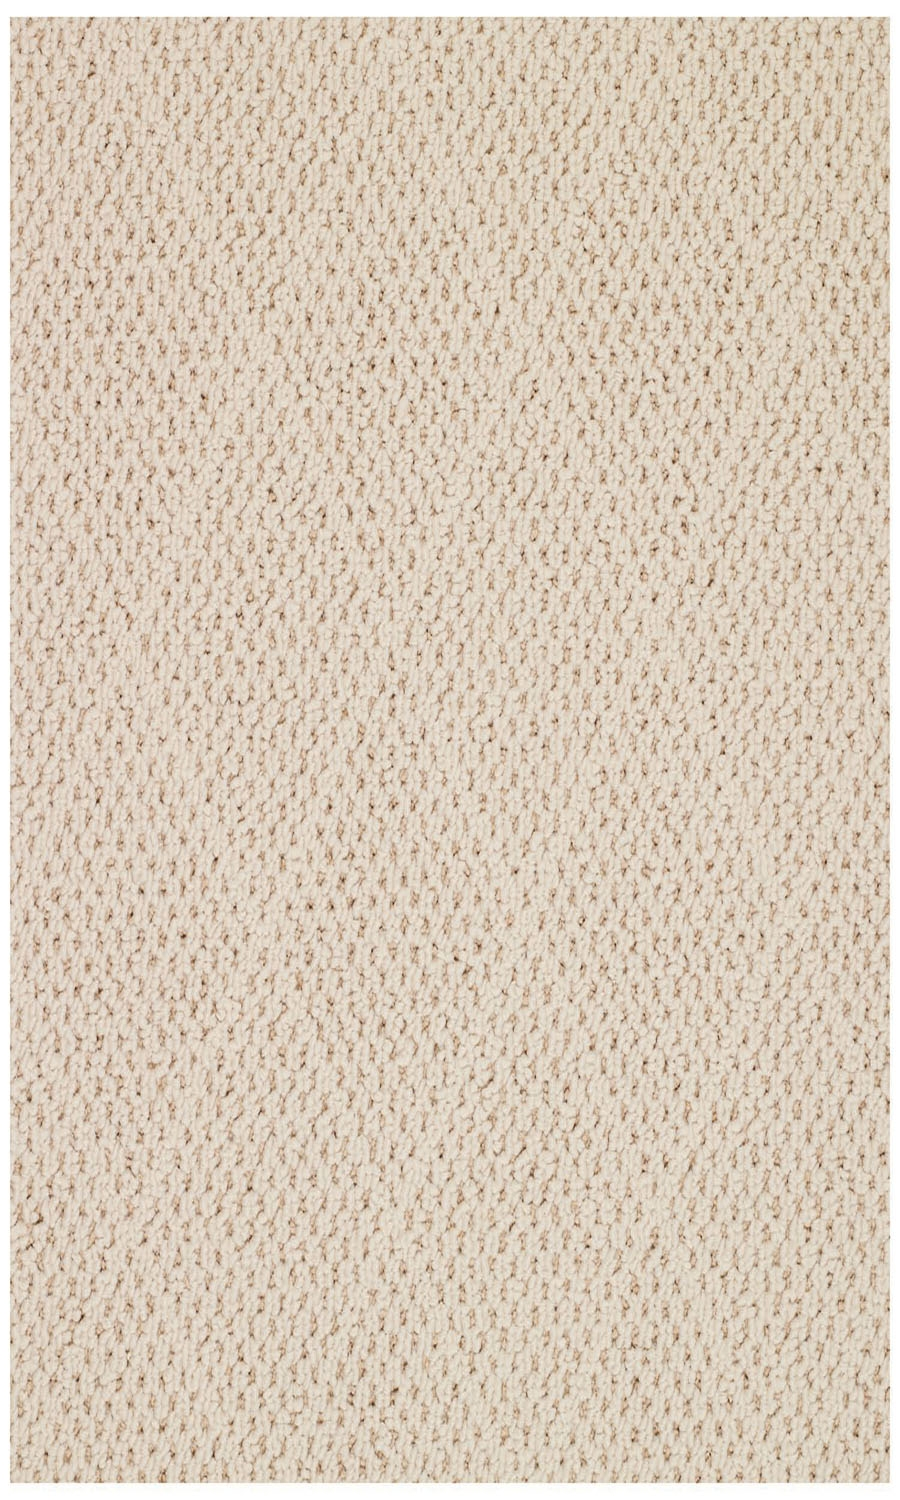 Capel Shoal White Wicker 1996 000 Rug